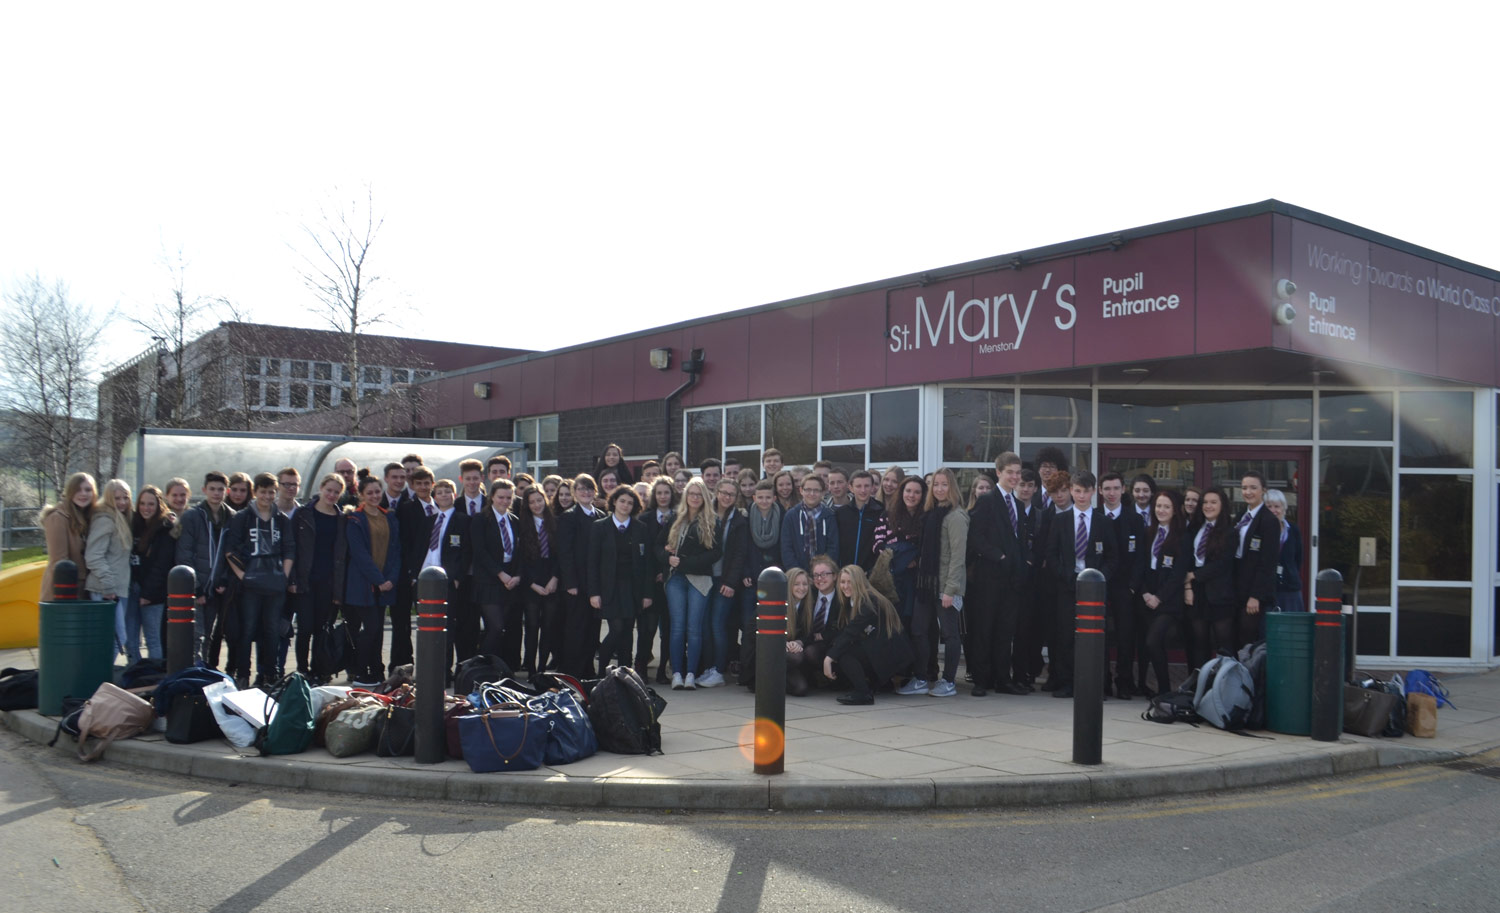 Photo: German Exchange visit to the UK Commemorative photo at St. Mary's